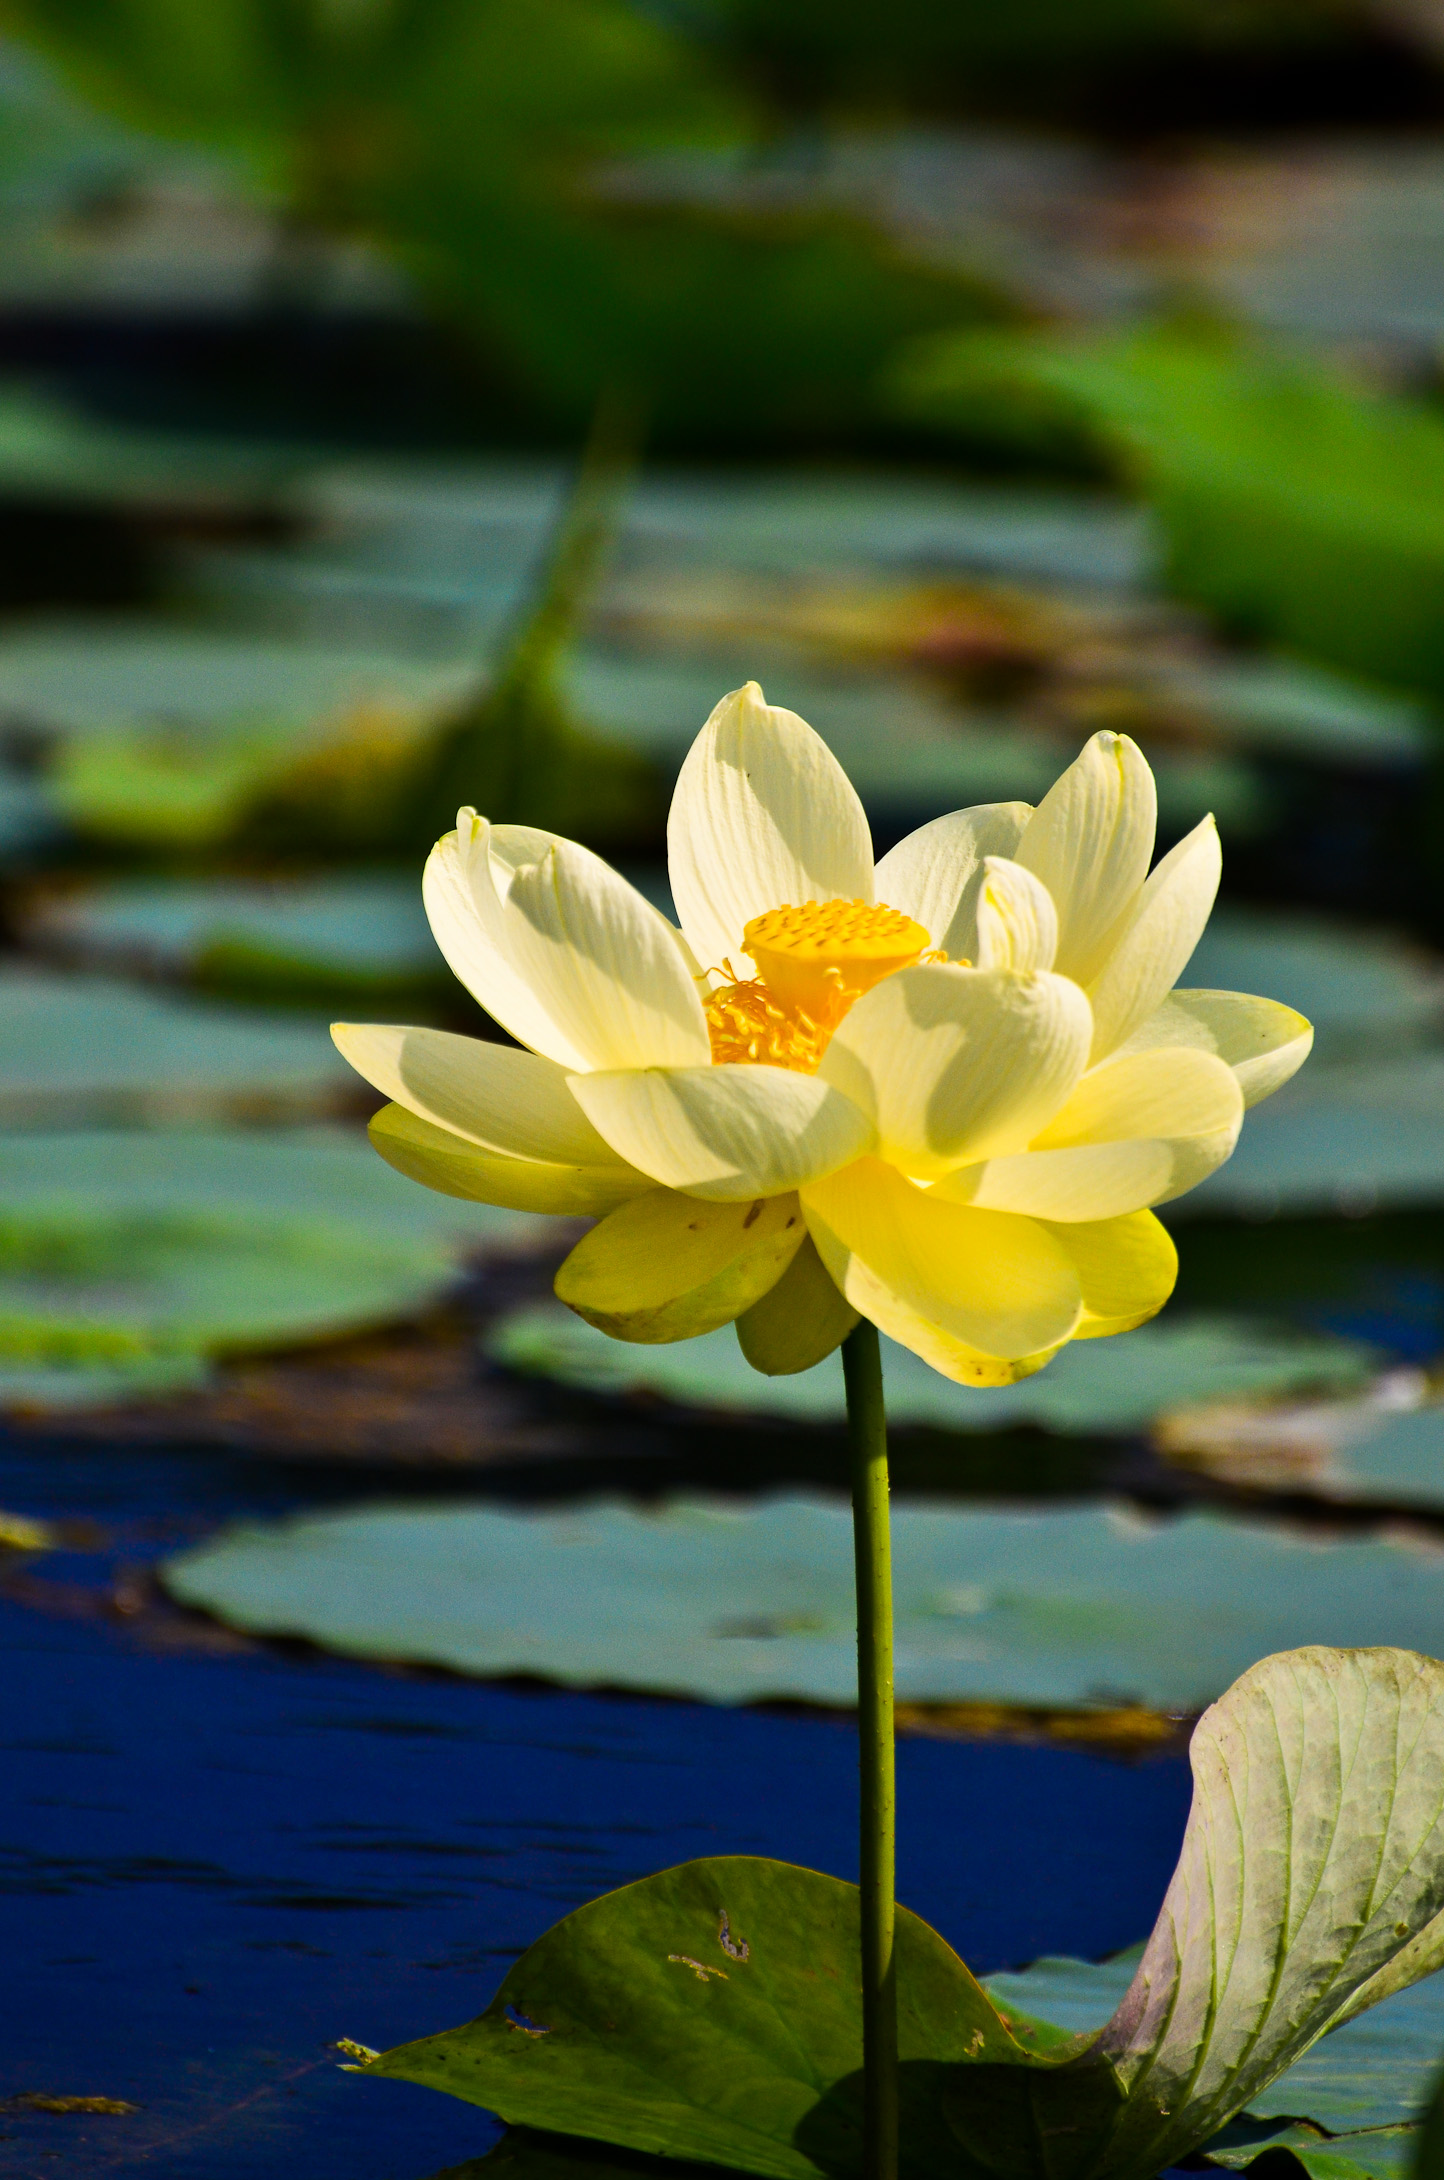 Lotus flower and water everyday nature scenes lotus flower and water izmirmasajfo